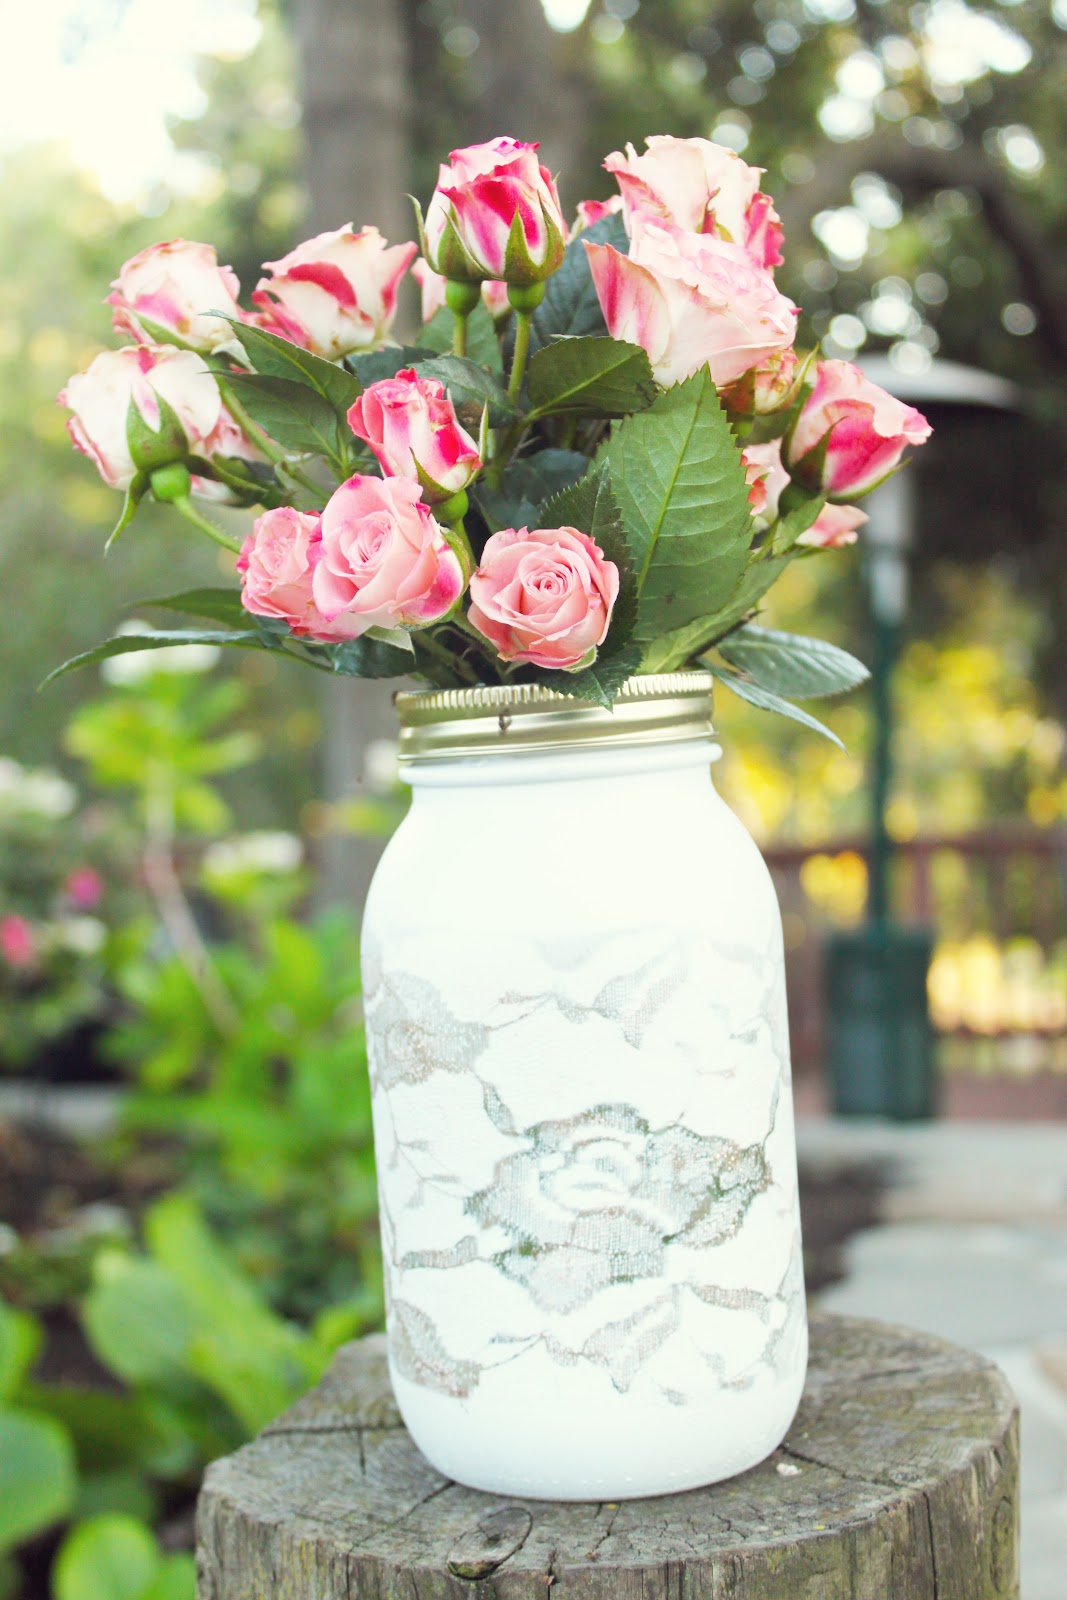 Diy lace vase michaela noelle designs what do you think easy enough im thinking this could be a great holiday gift or even a diy wedding centerpiece could you imagine a cluster of them on reviewsmspy